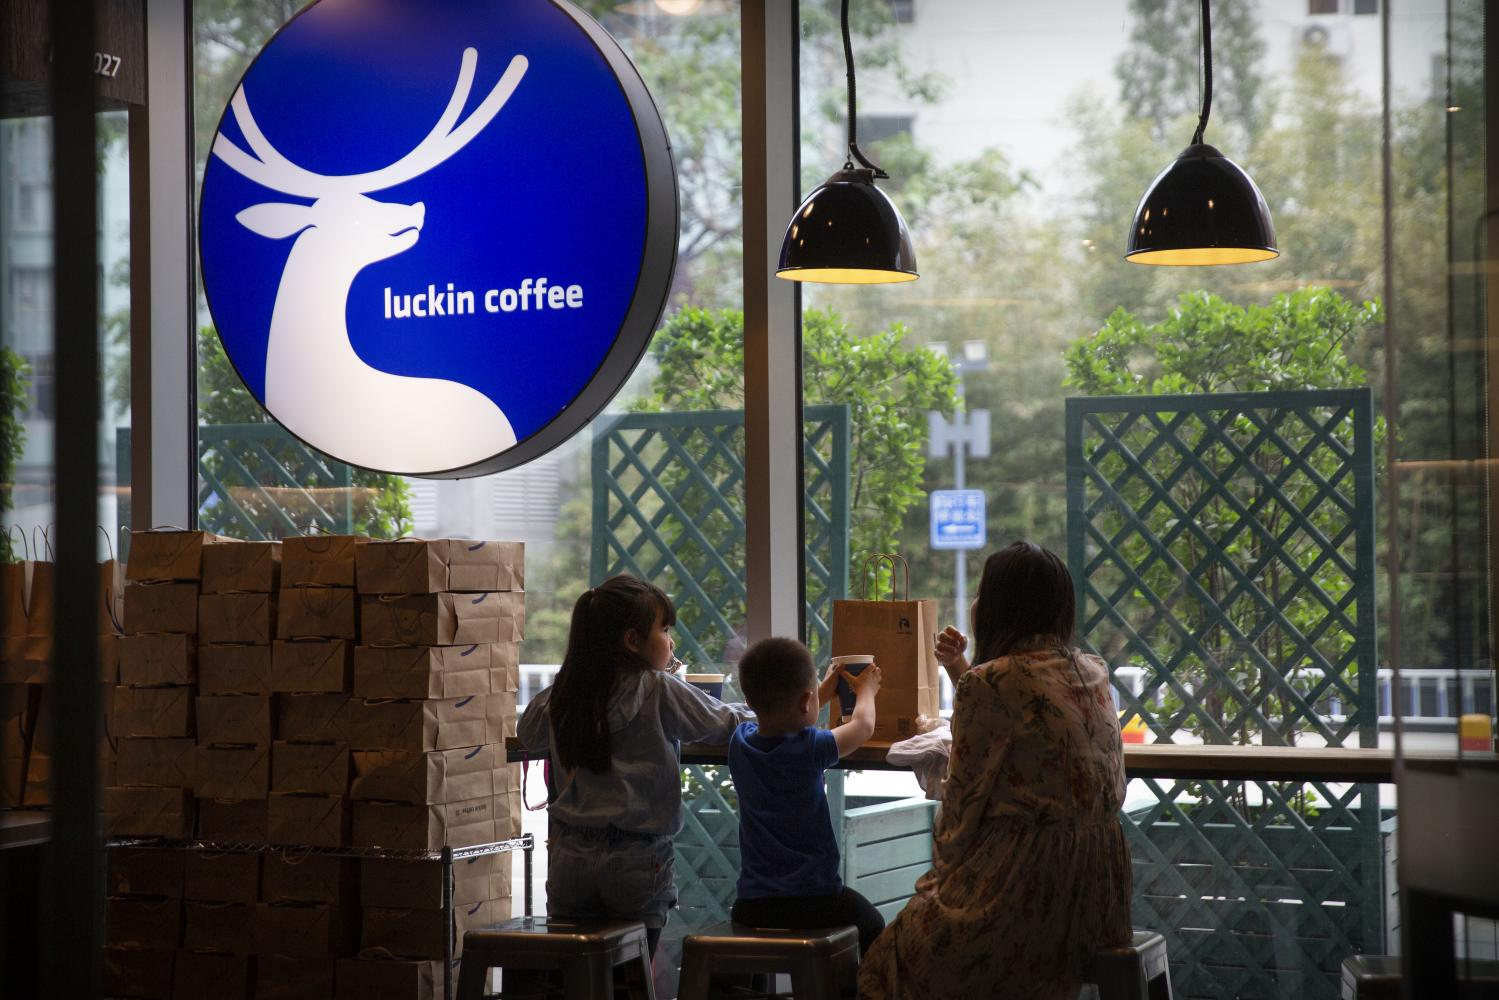 Luckin Coffee Inc's store number is 2,963, about 1,000 fewer than Starbucks. At the turn of the year, Luckin aims to open 4,500 stores. (AP Photo)